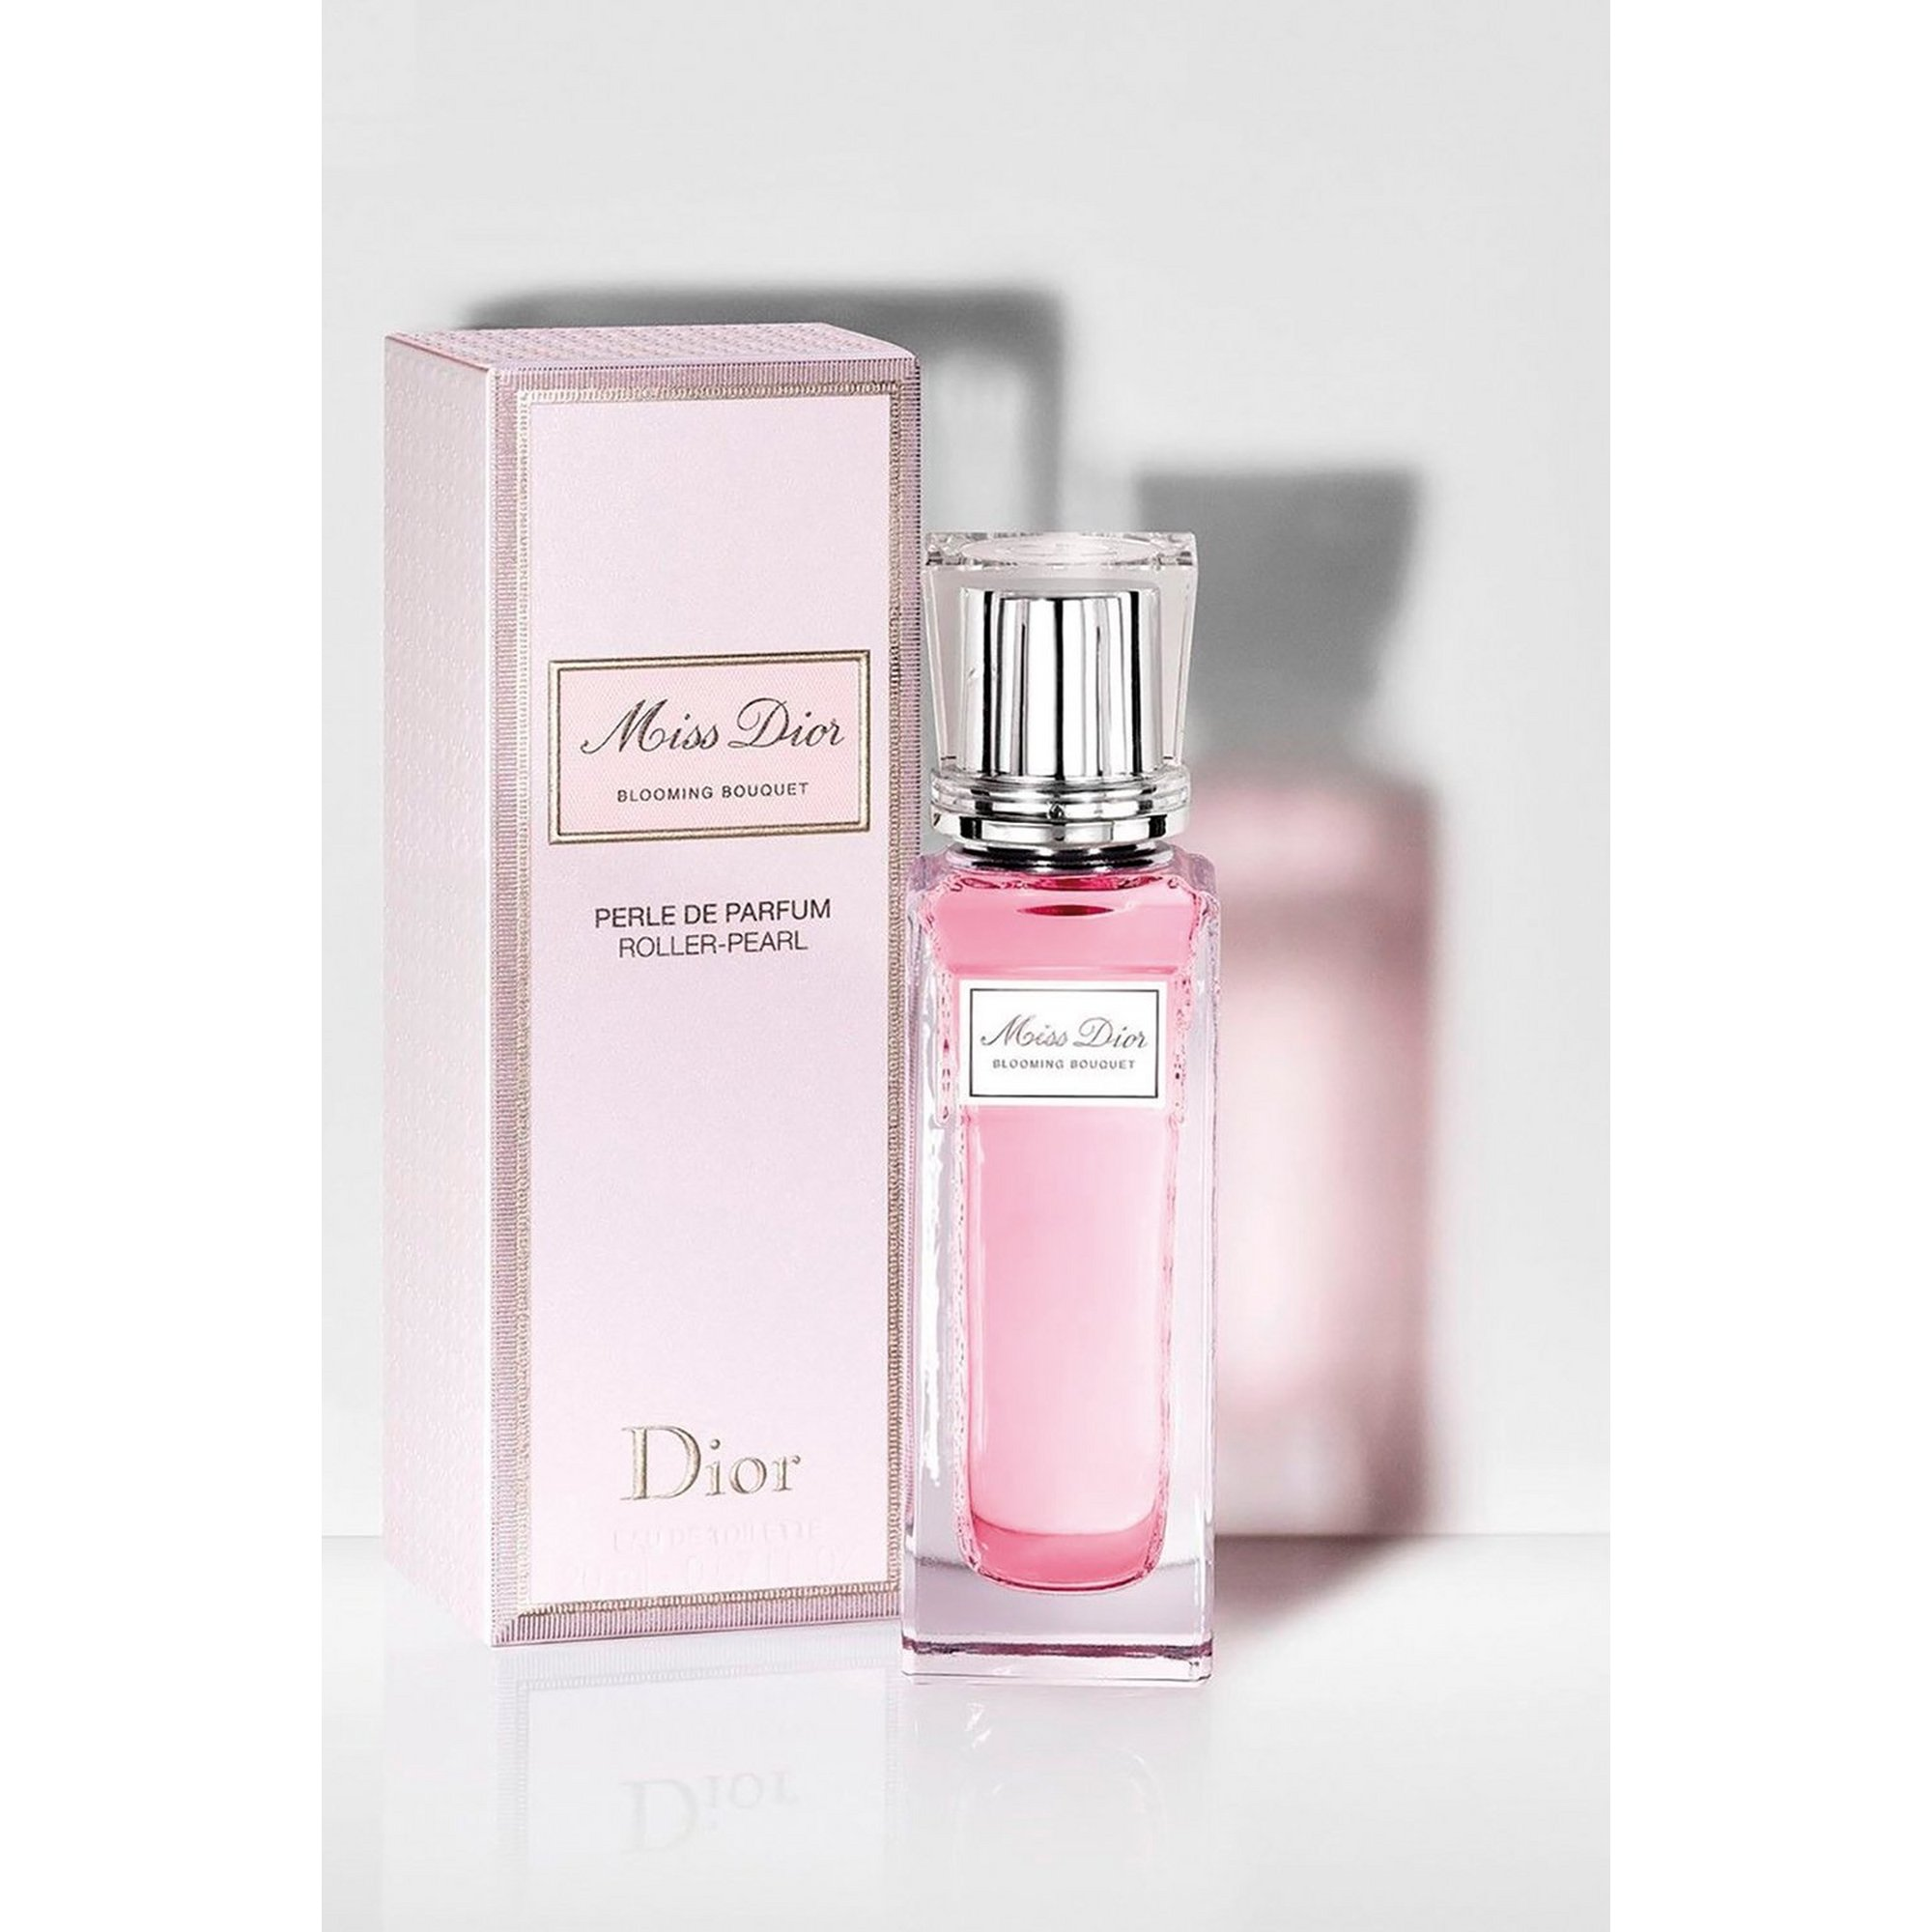 Image of Dior Miss Dior Blooming Bouquet 20ml EDT Rollerball